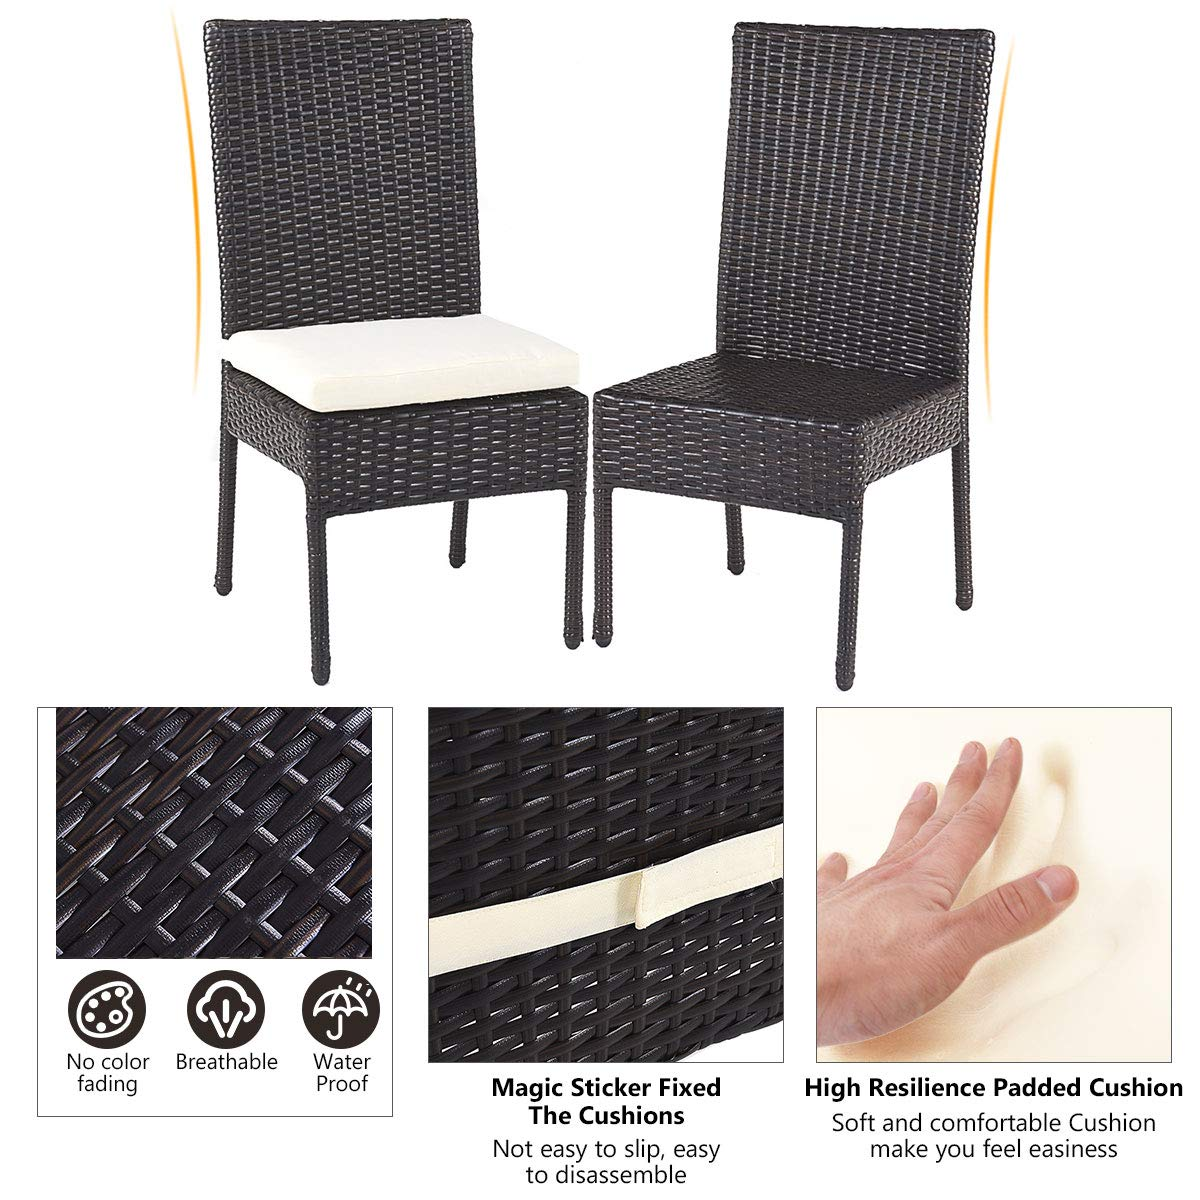 Tangkula Patio Furniture, 5 PCS All Weather Resistant Heavy Duty Wicker Dining Set with Chairs, Perfect for Balcony Patio Garden Poolside, 5 Piece Wicker Table and Chairs Set by Tangkula (Image #6)